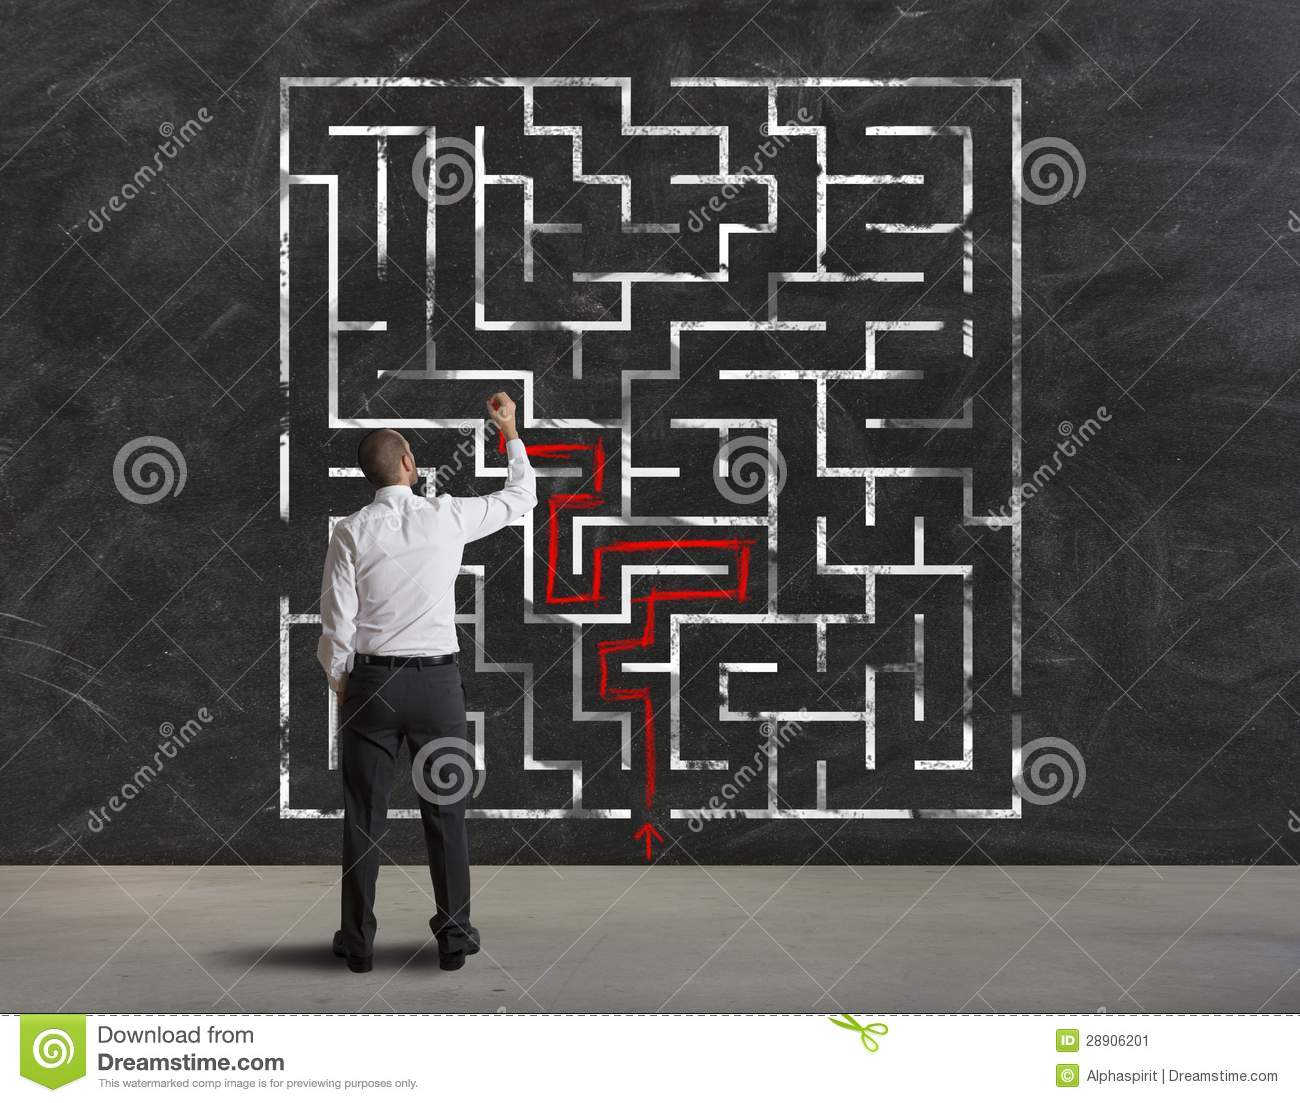 Finding the solution of maze